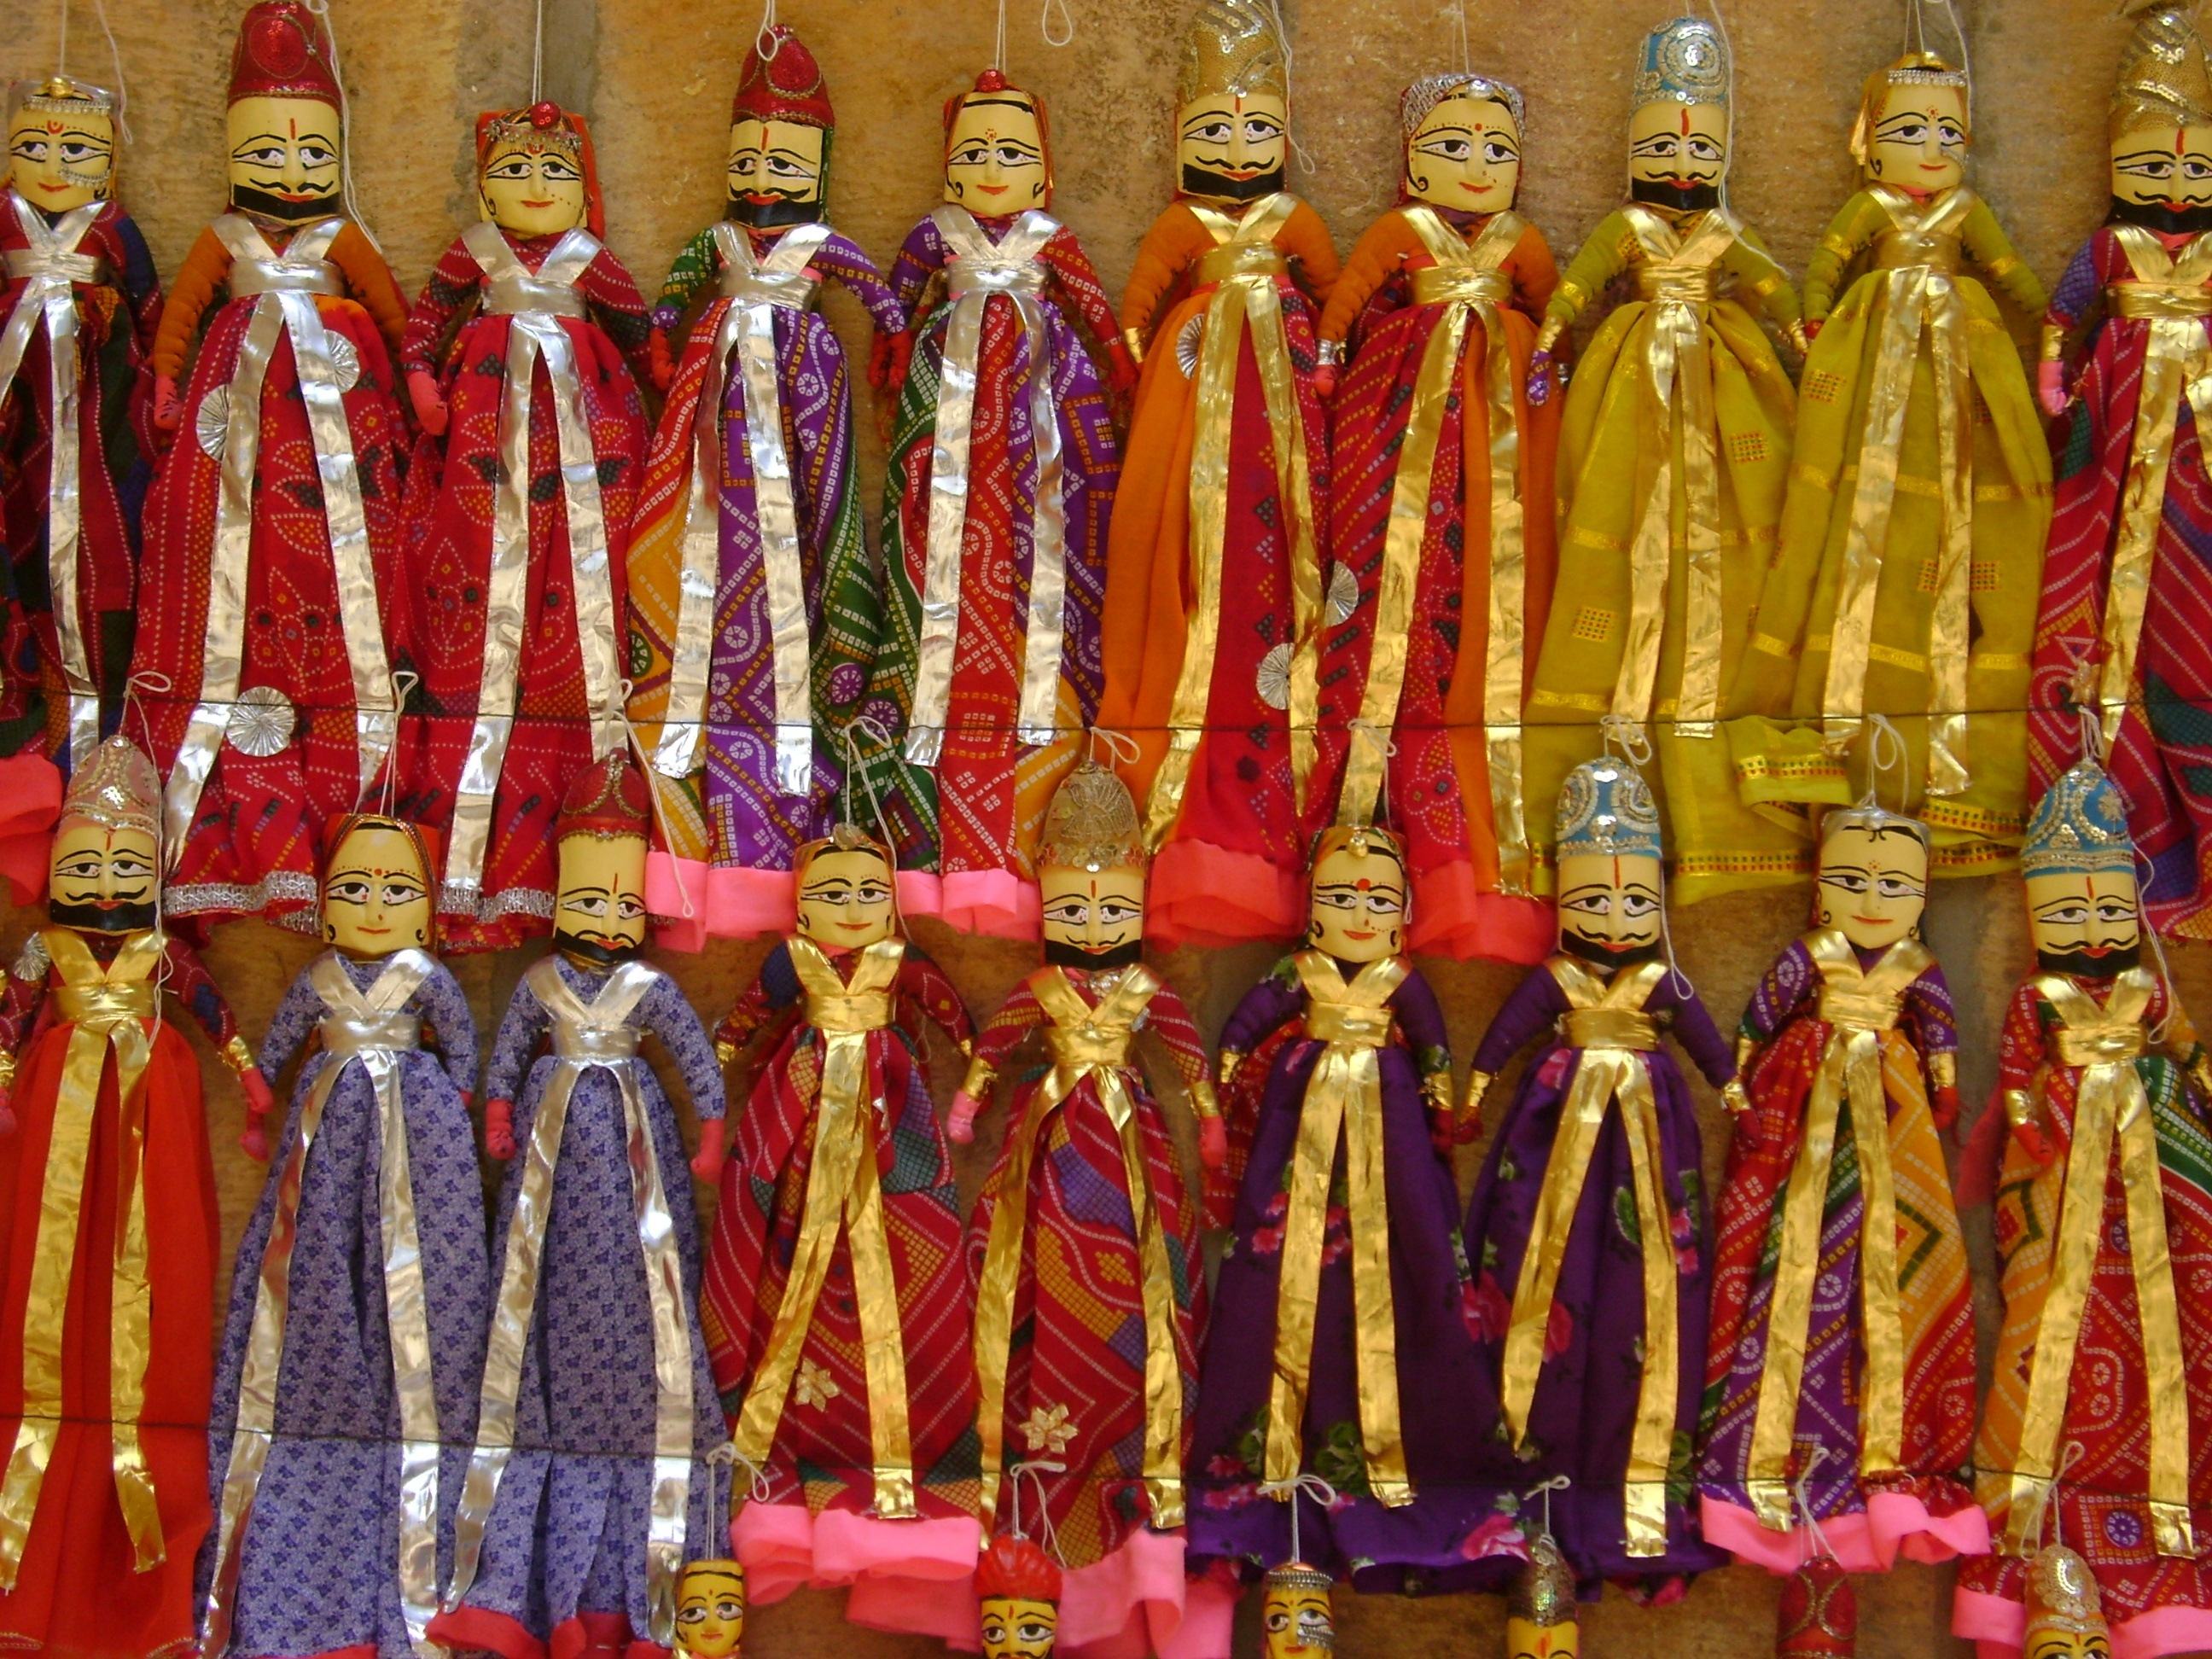 How To Export Handicrafts From India Particularly Wood And Or